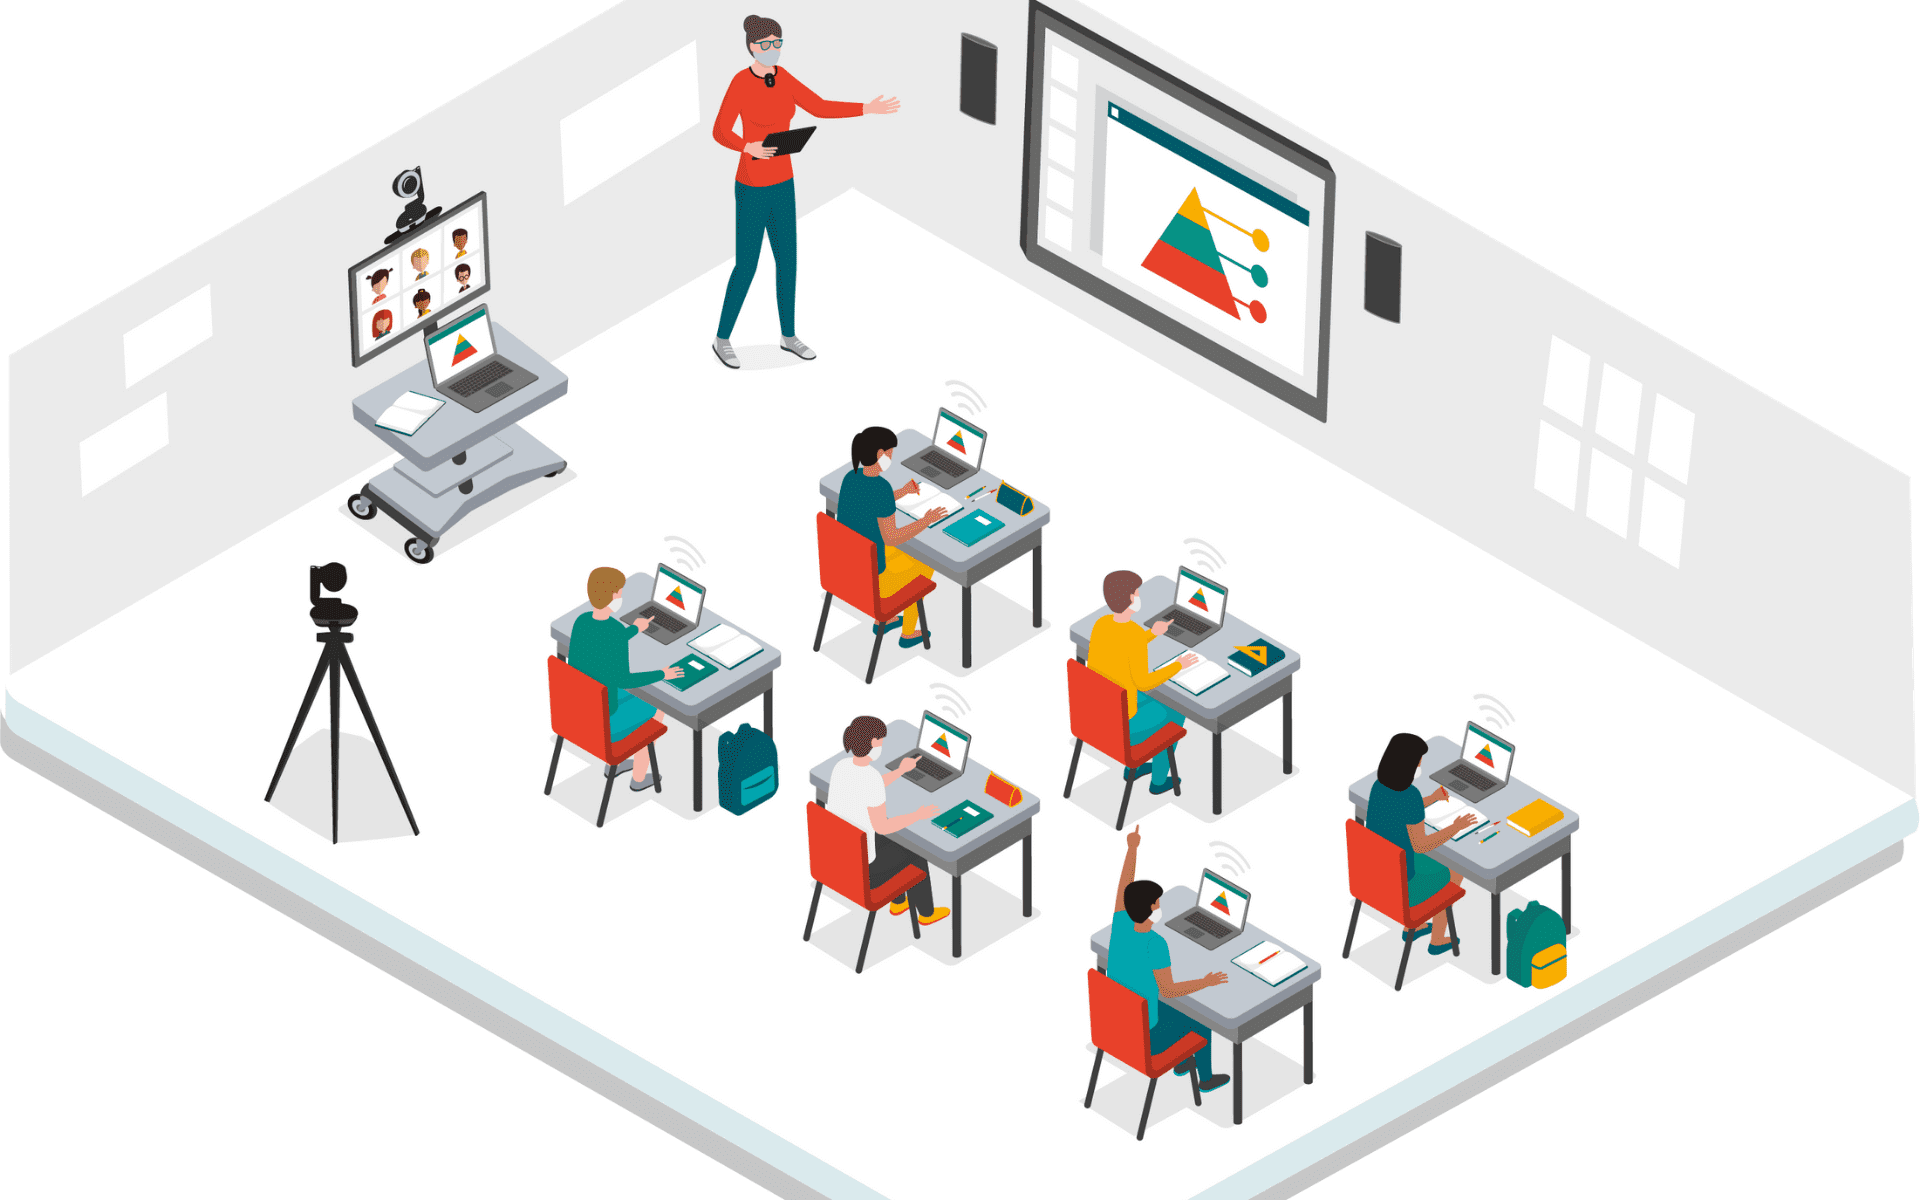 4 IT Learning Necessities for Hybrid Learning in Classrooms